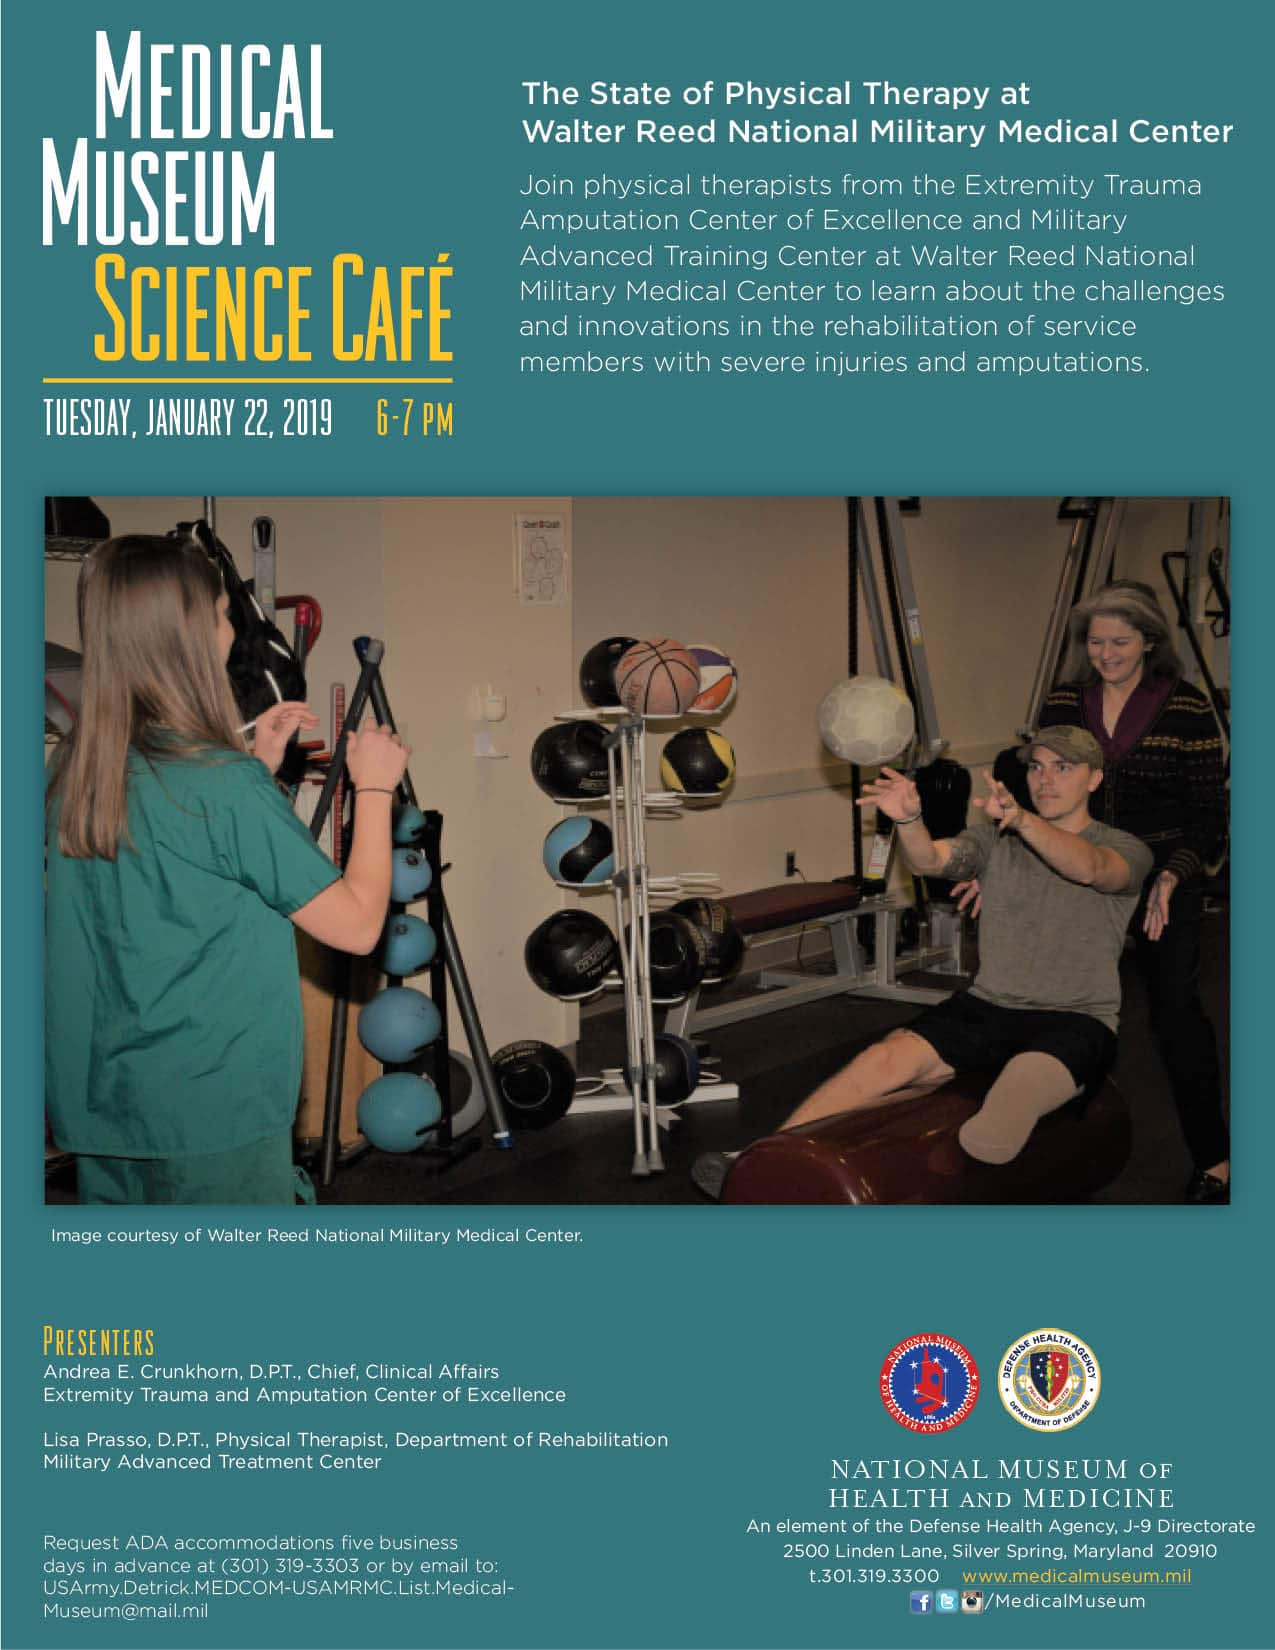 Medical Museum Science Cafe: The State of Physical Therapy at Walter Reed National Military Medical Center